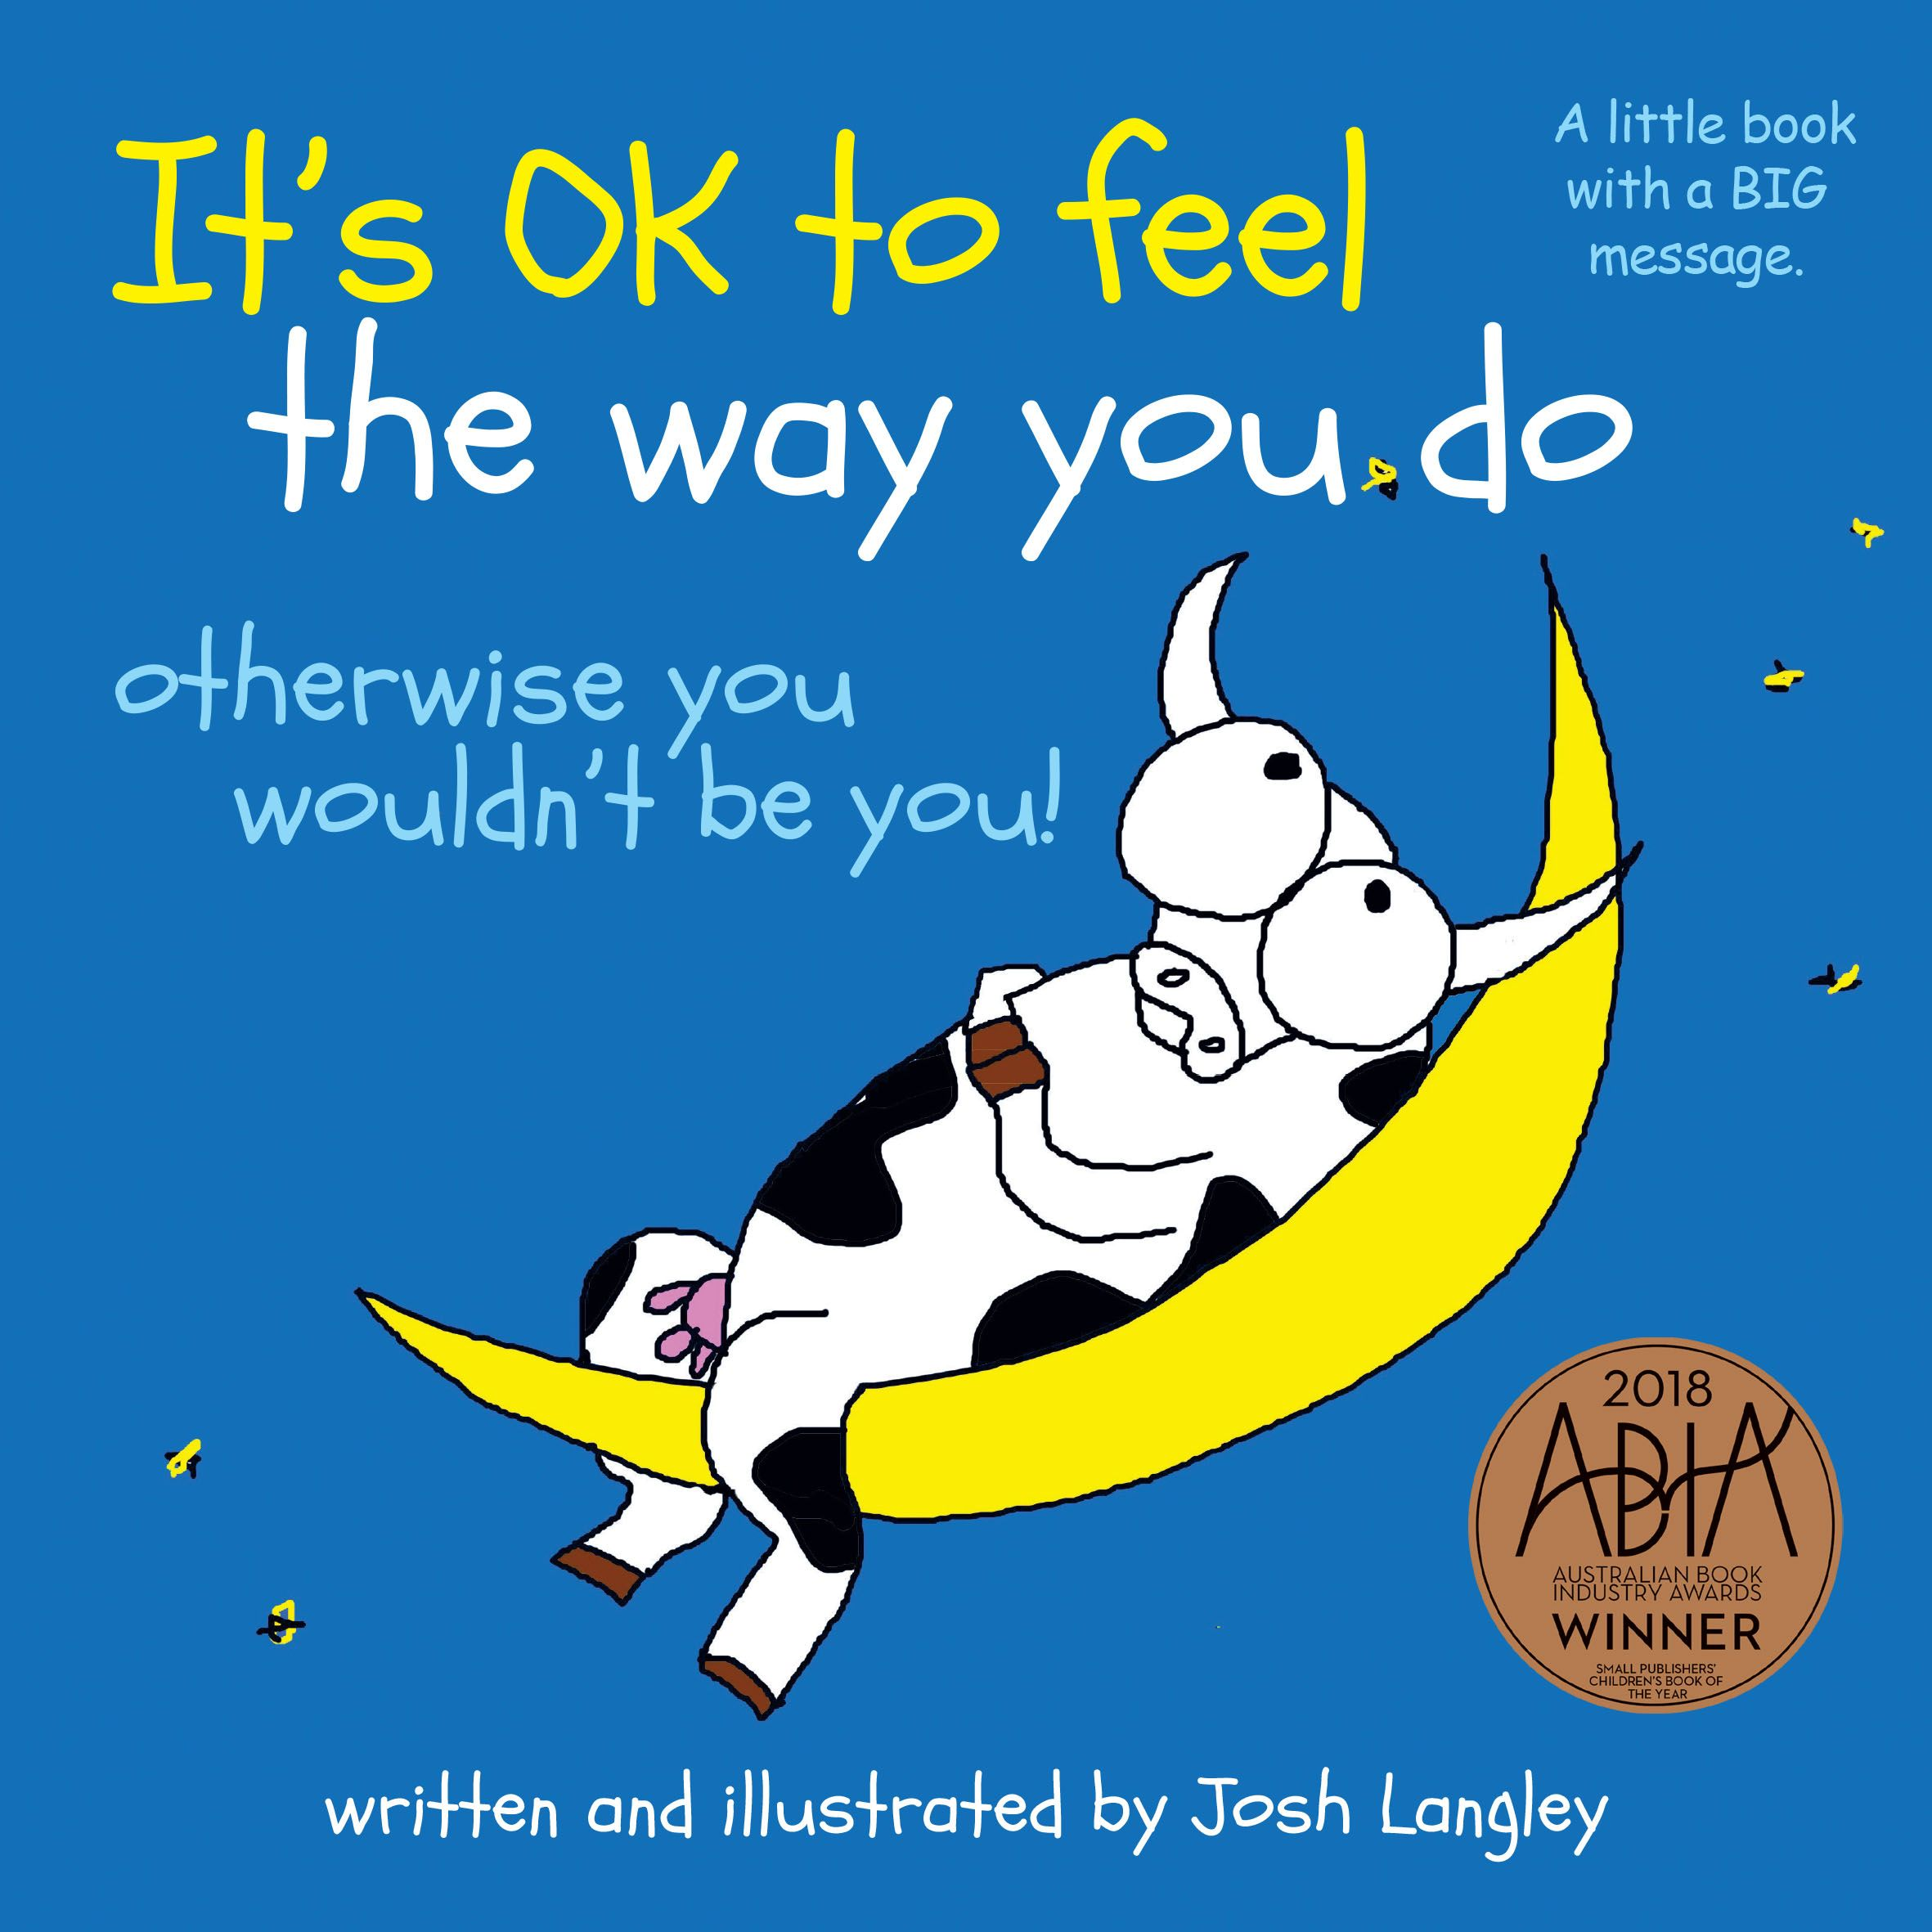 It's ok to feel the way you do otherwise you wouldn't be you!